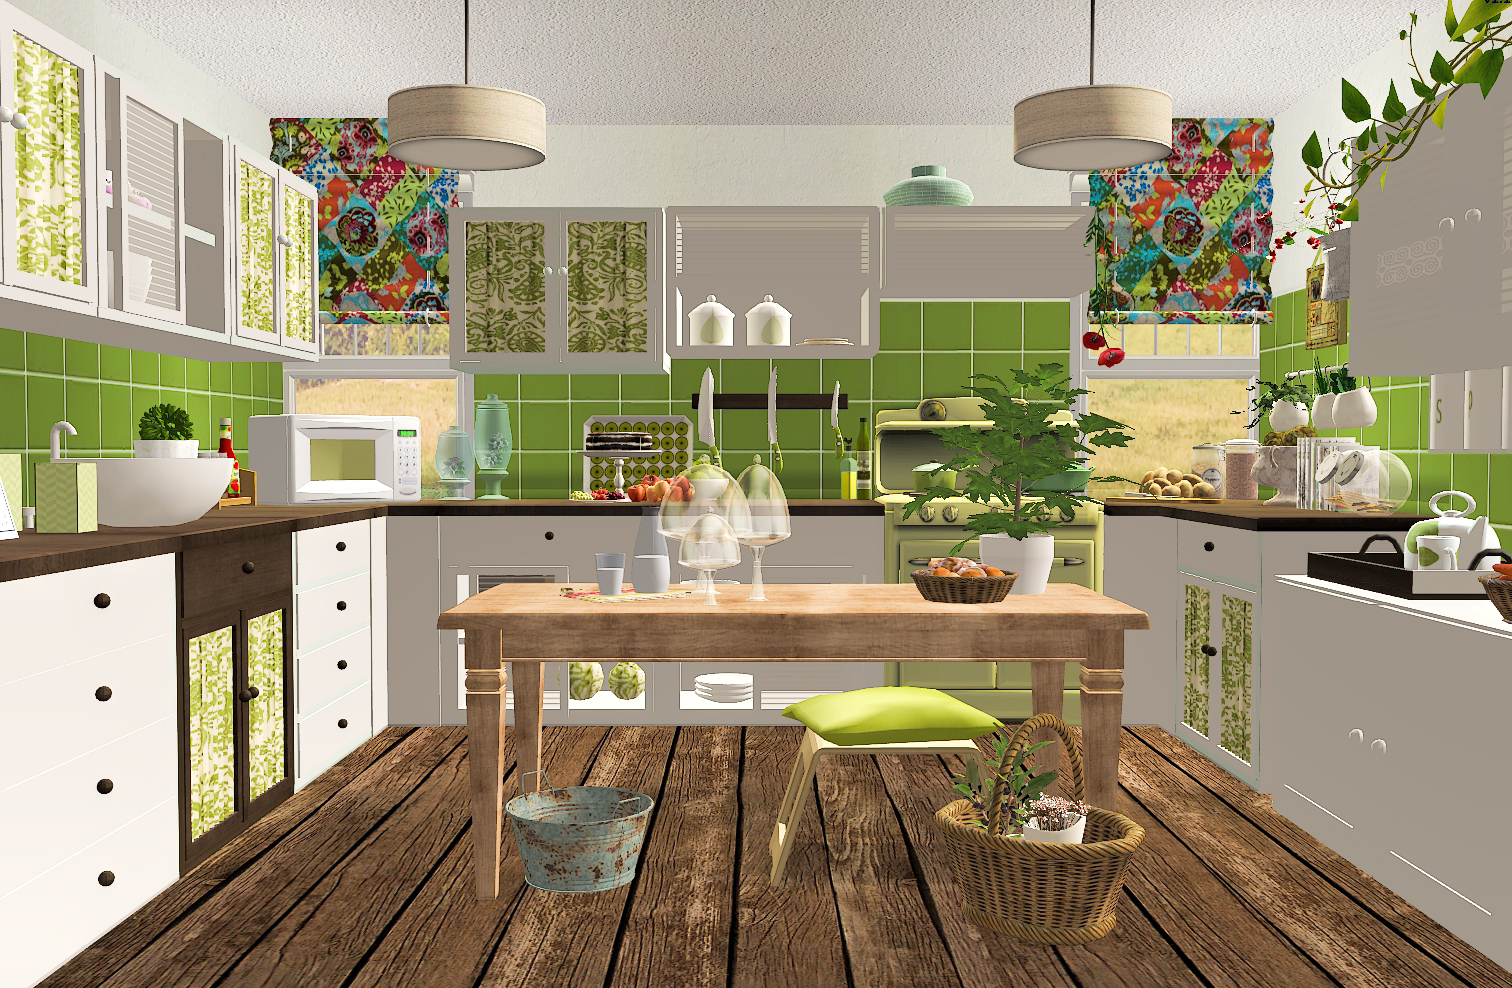 Sims Kitchen Steffor Joy Kitchen Recolor Casaslindas